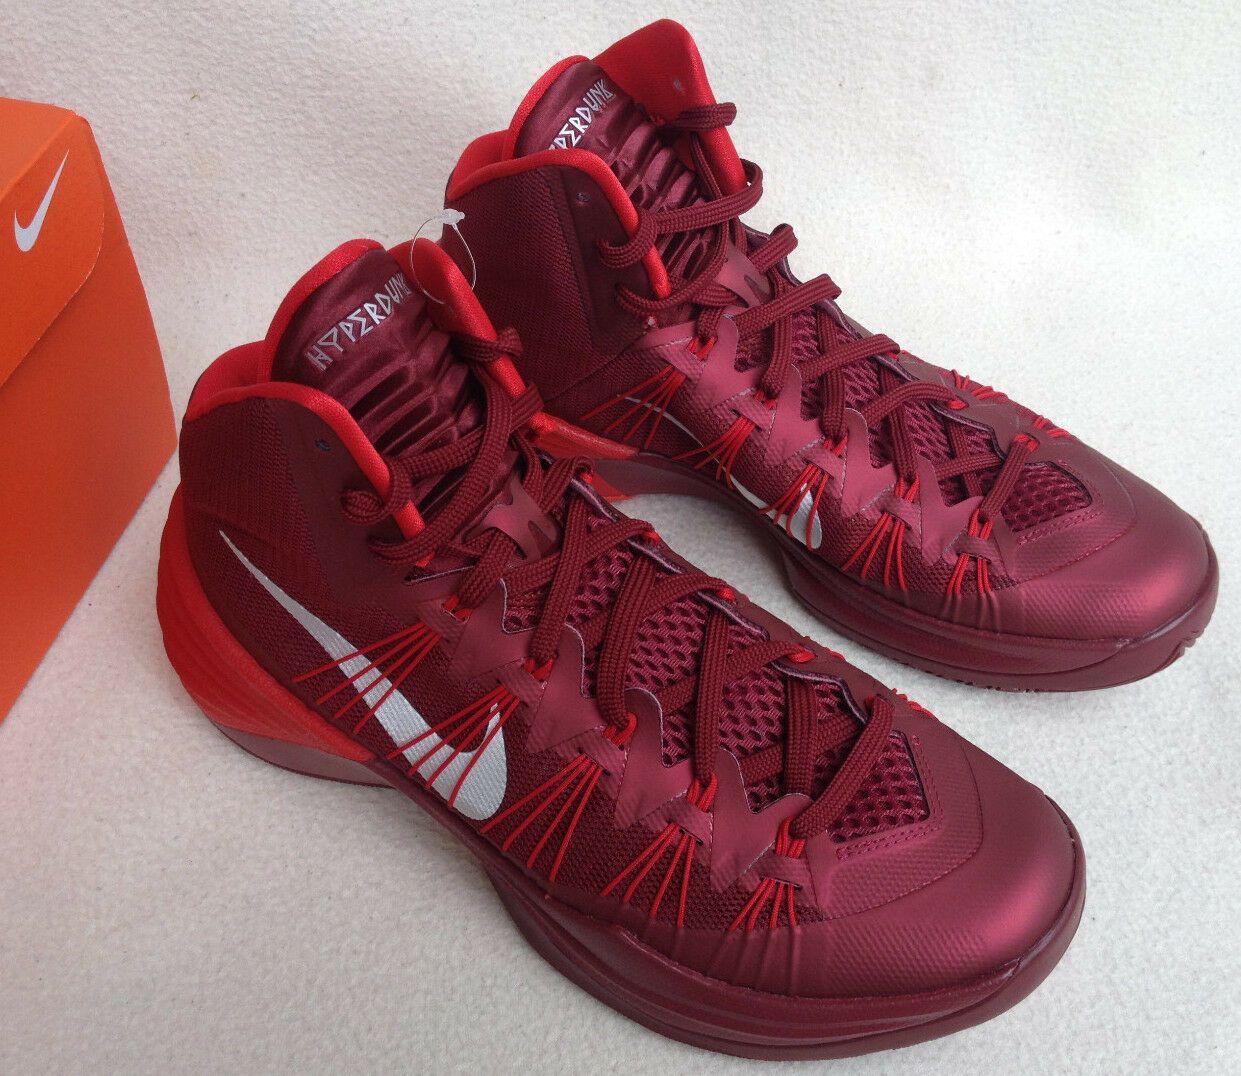 Nike Hyperdunk TB 2013 Team 599527-600 Red Basketball Shoes Women's 14 NCAA new